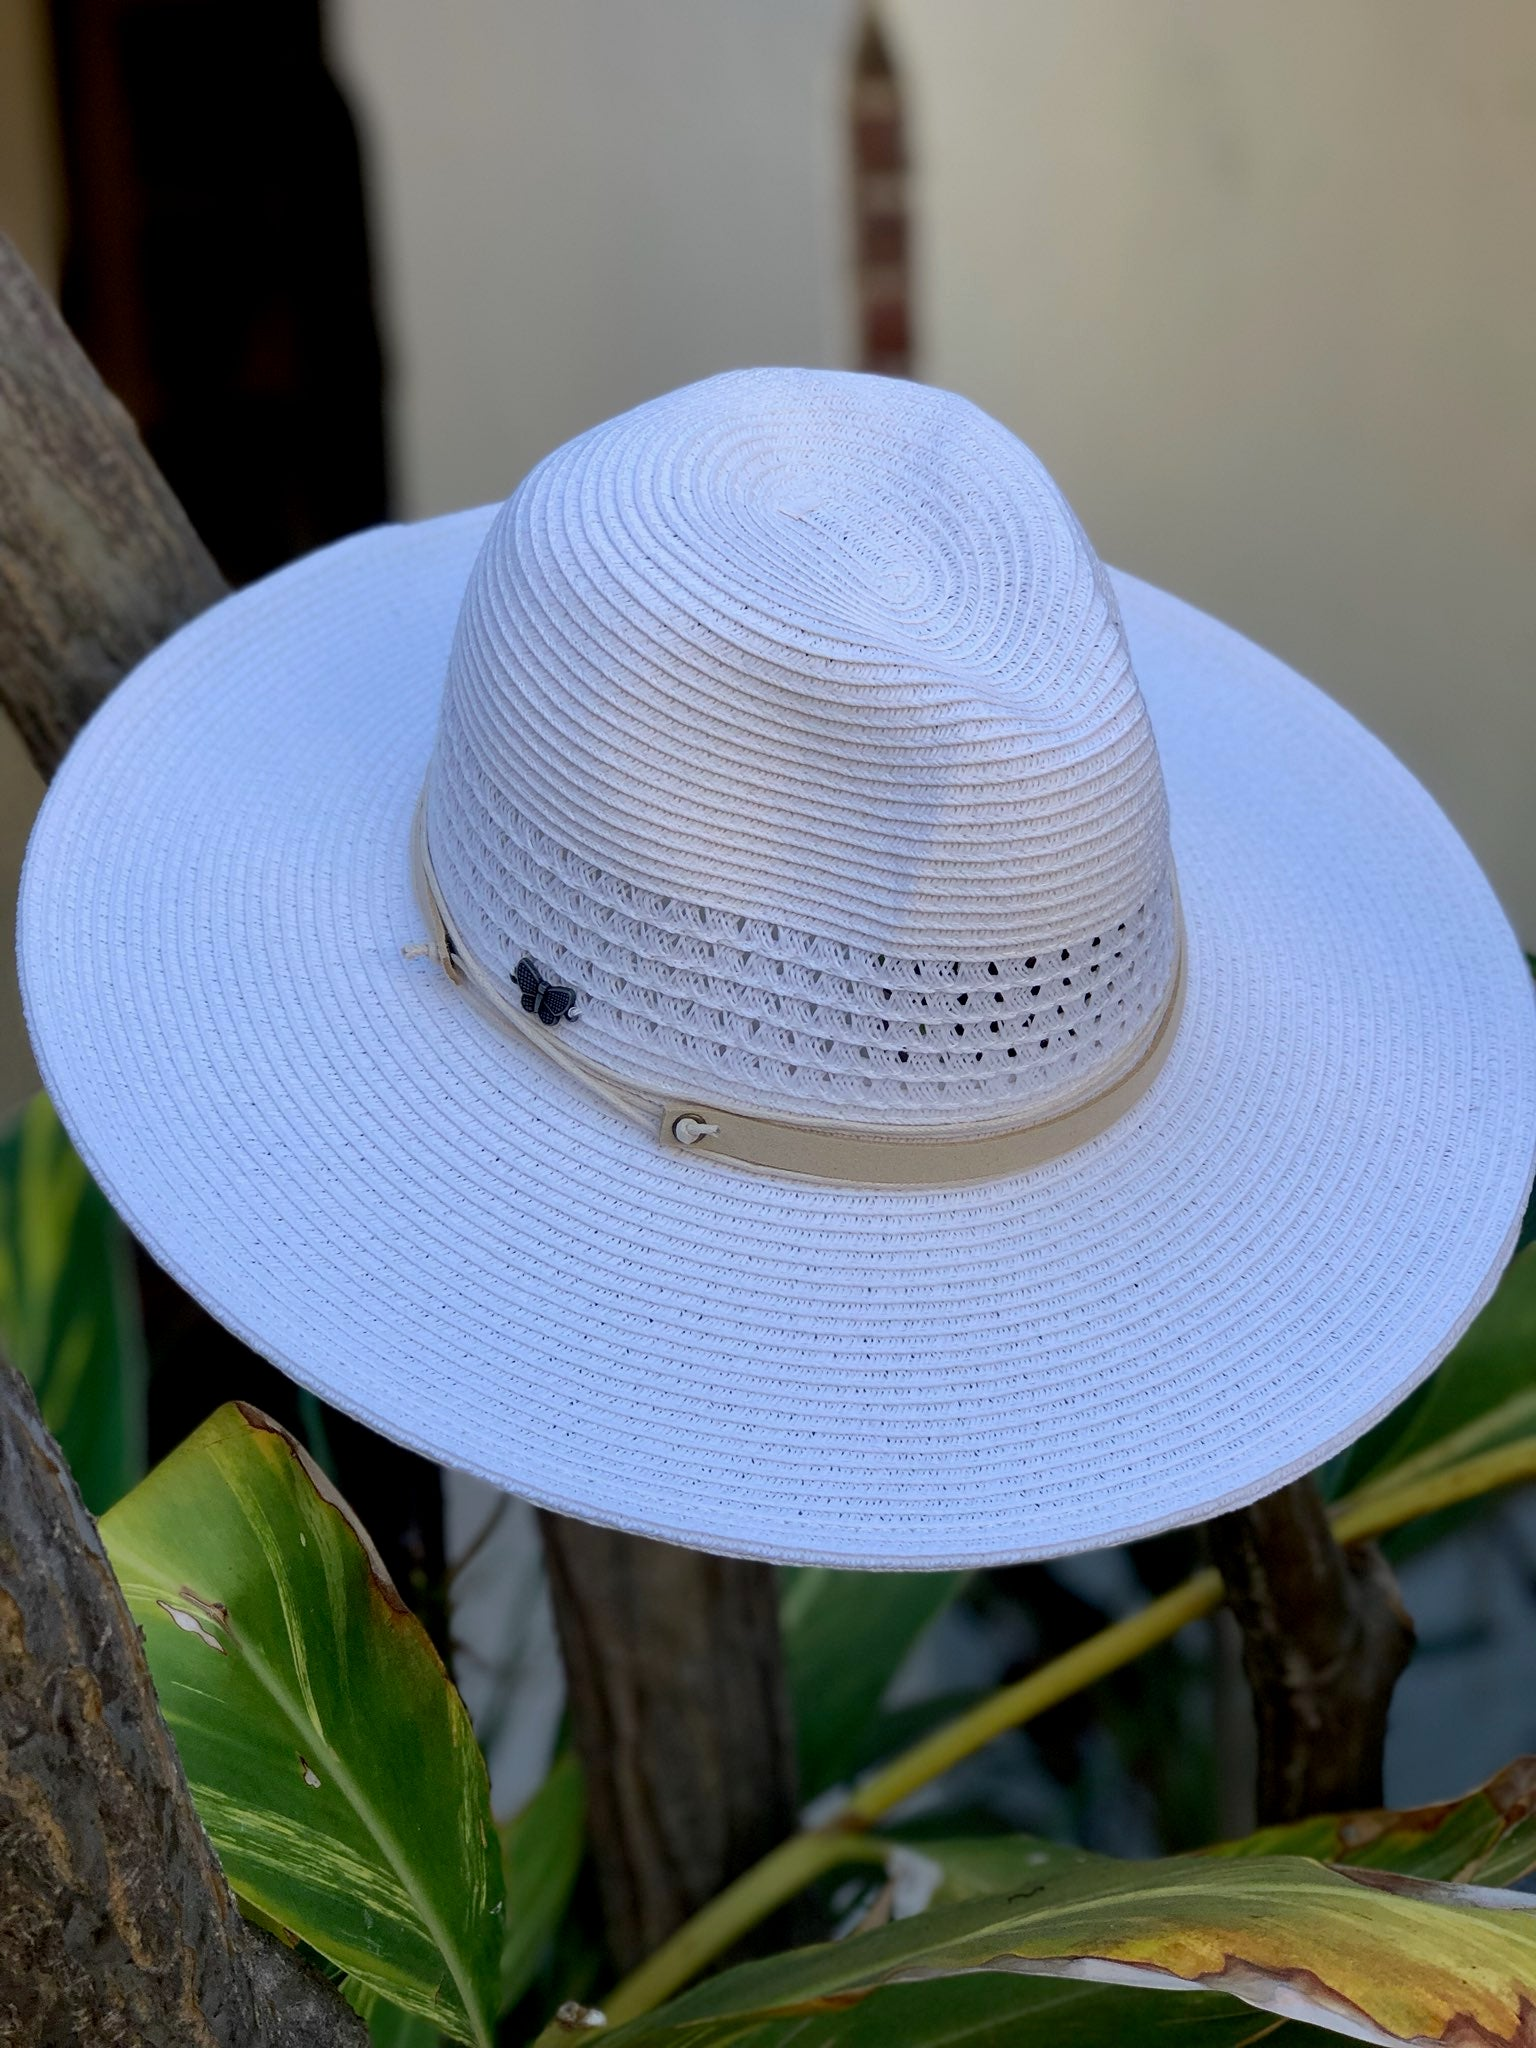 COASTAL BREEZE WIDE BRIM PANAMA HAT - WHITE